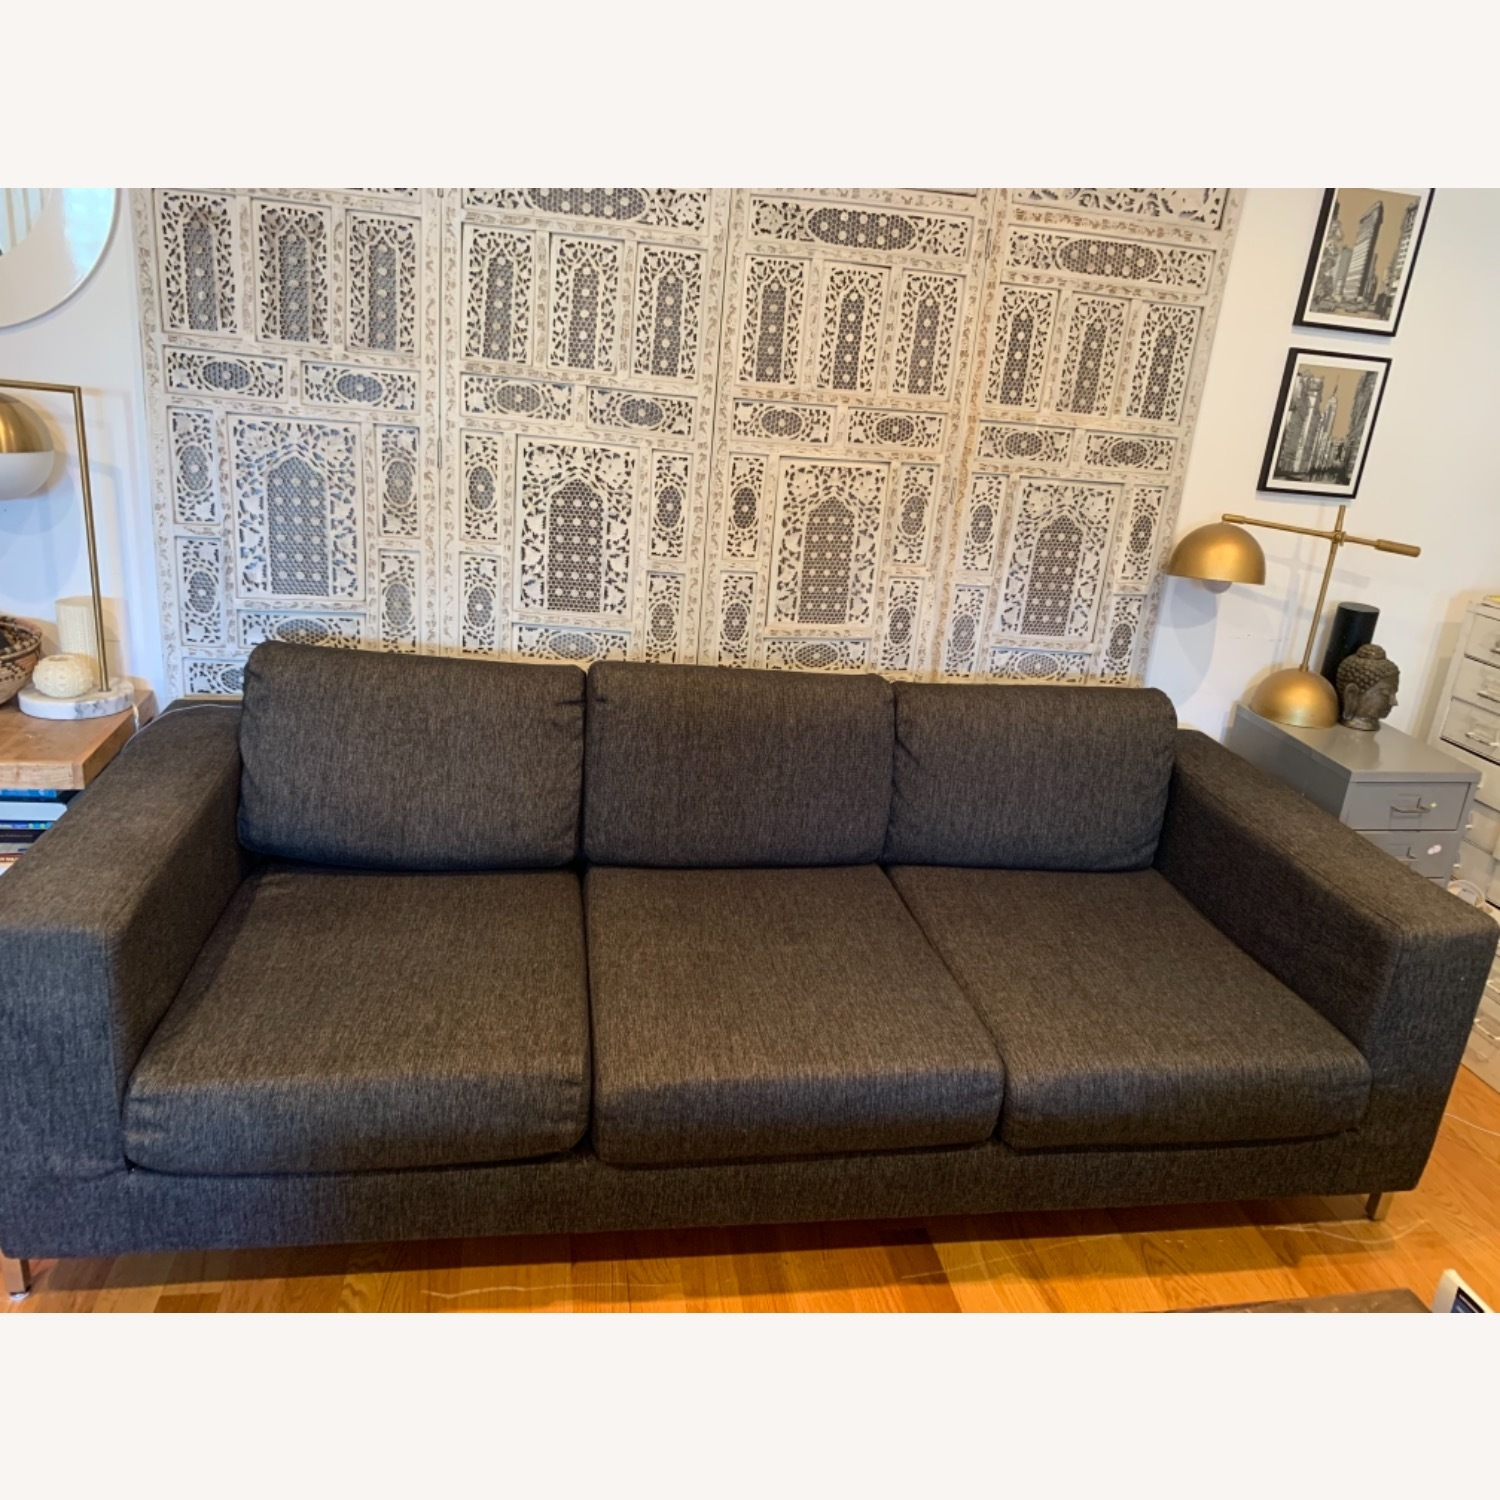 Gus Modern Gray Couch - image-1